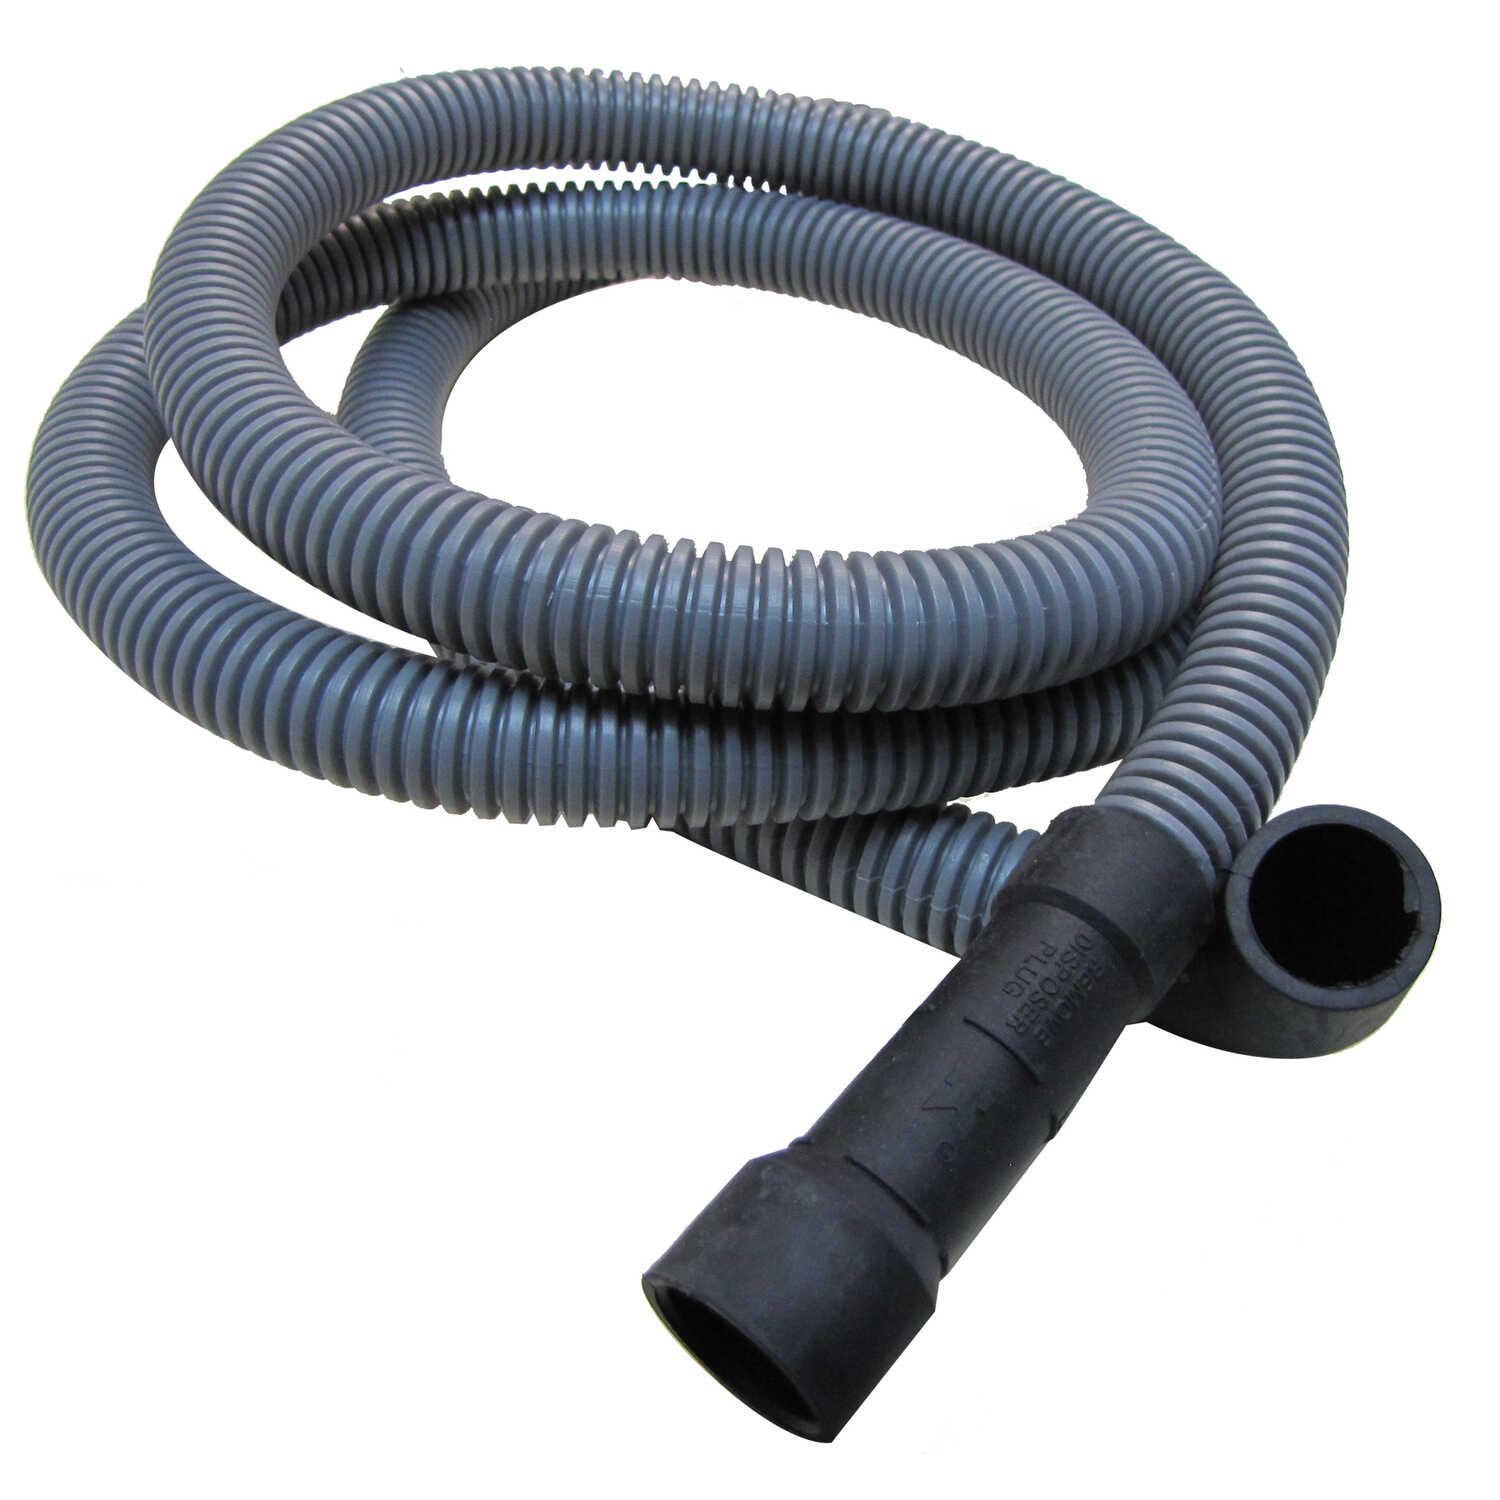 Plumb Pak  Plastic  Dishwasher Discharge Hose  5/8 in. Dia. x 6 ft. L